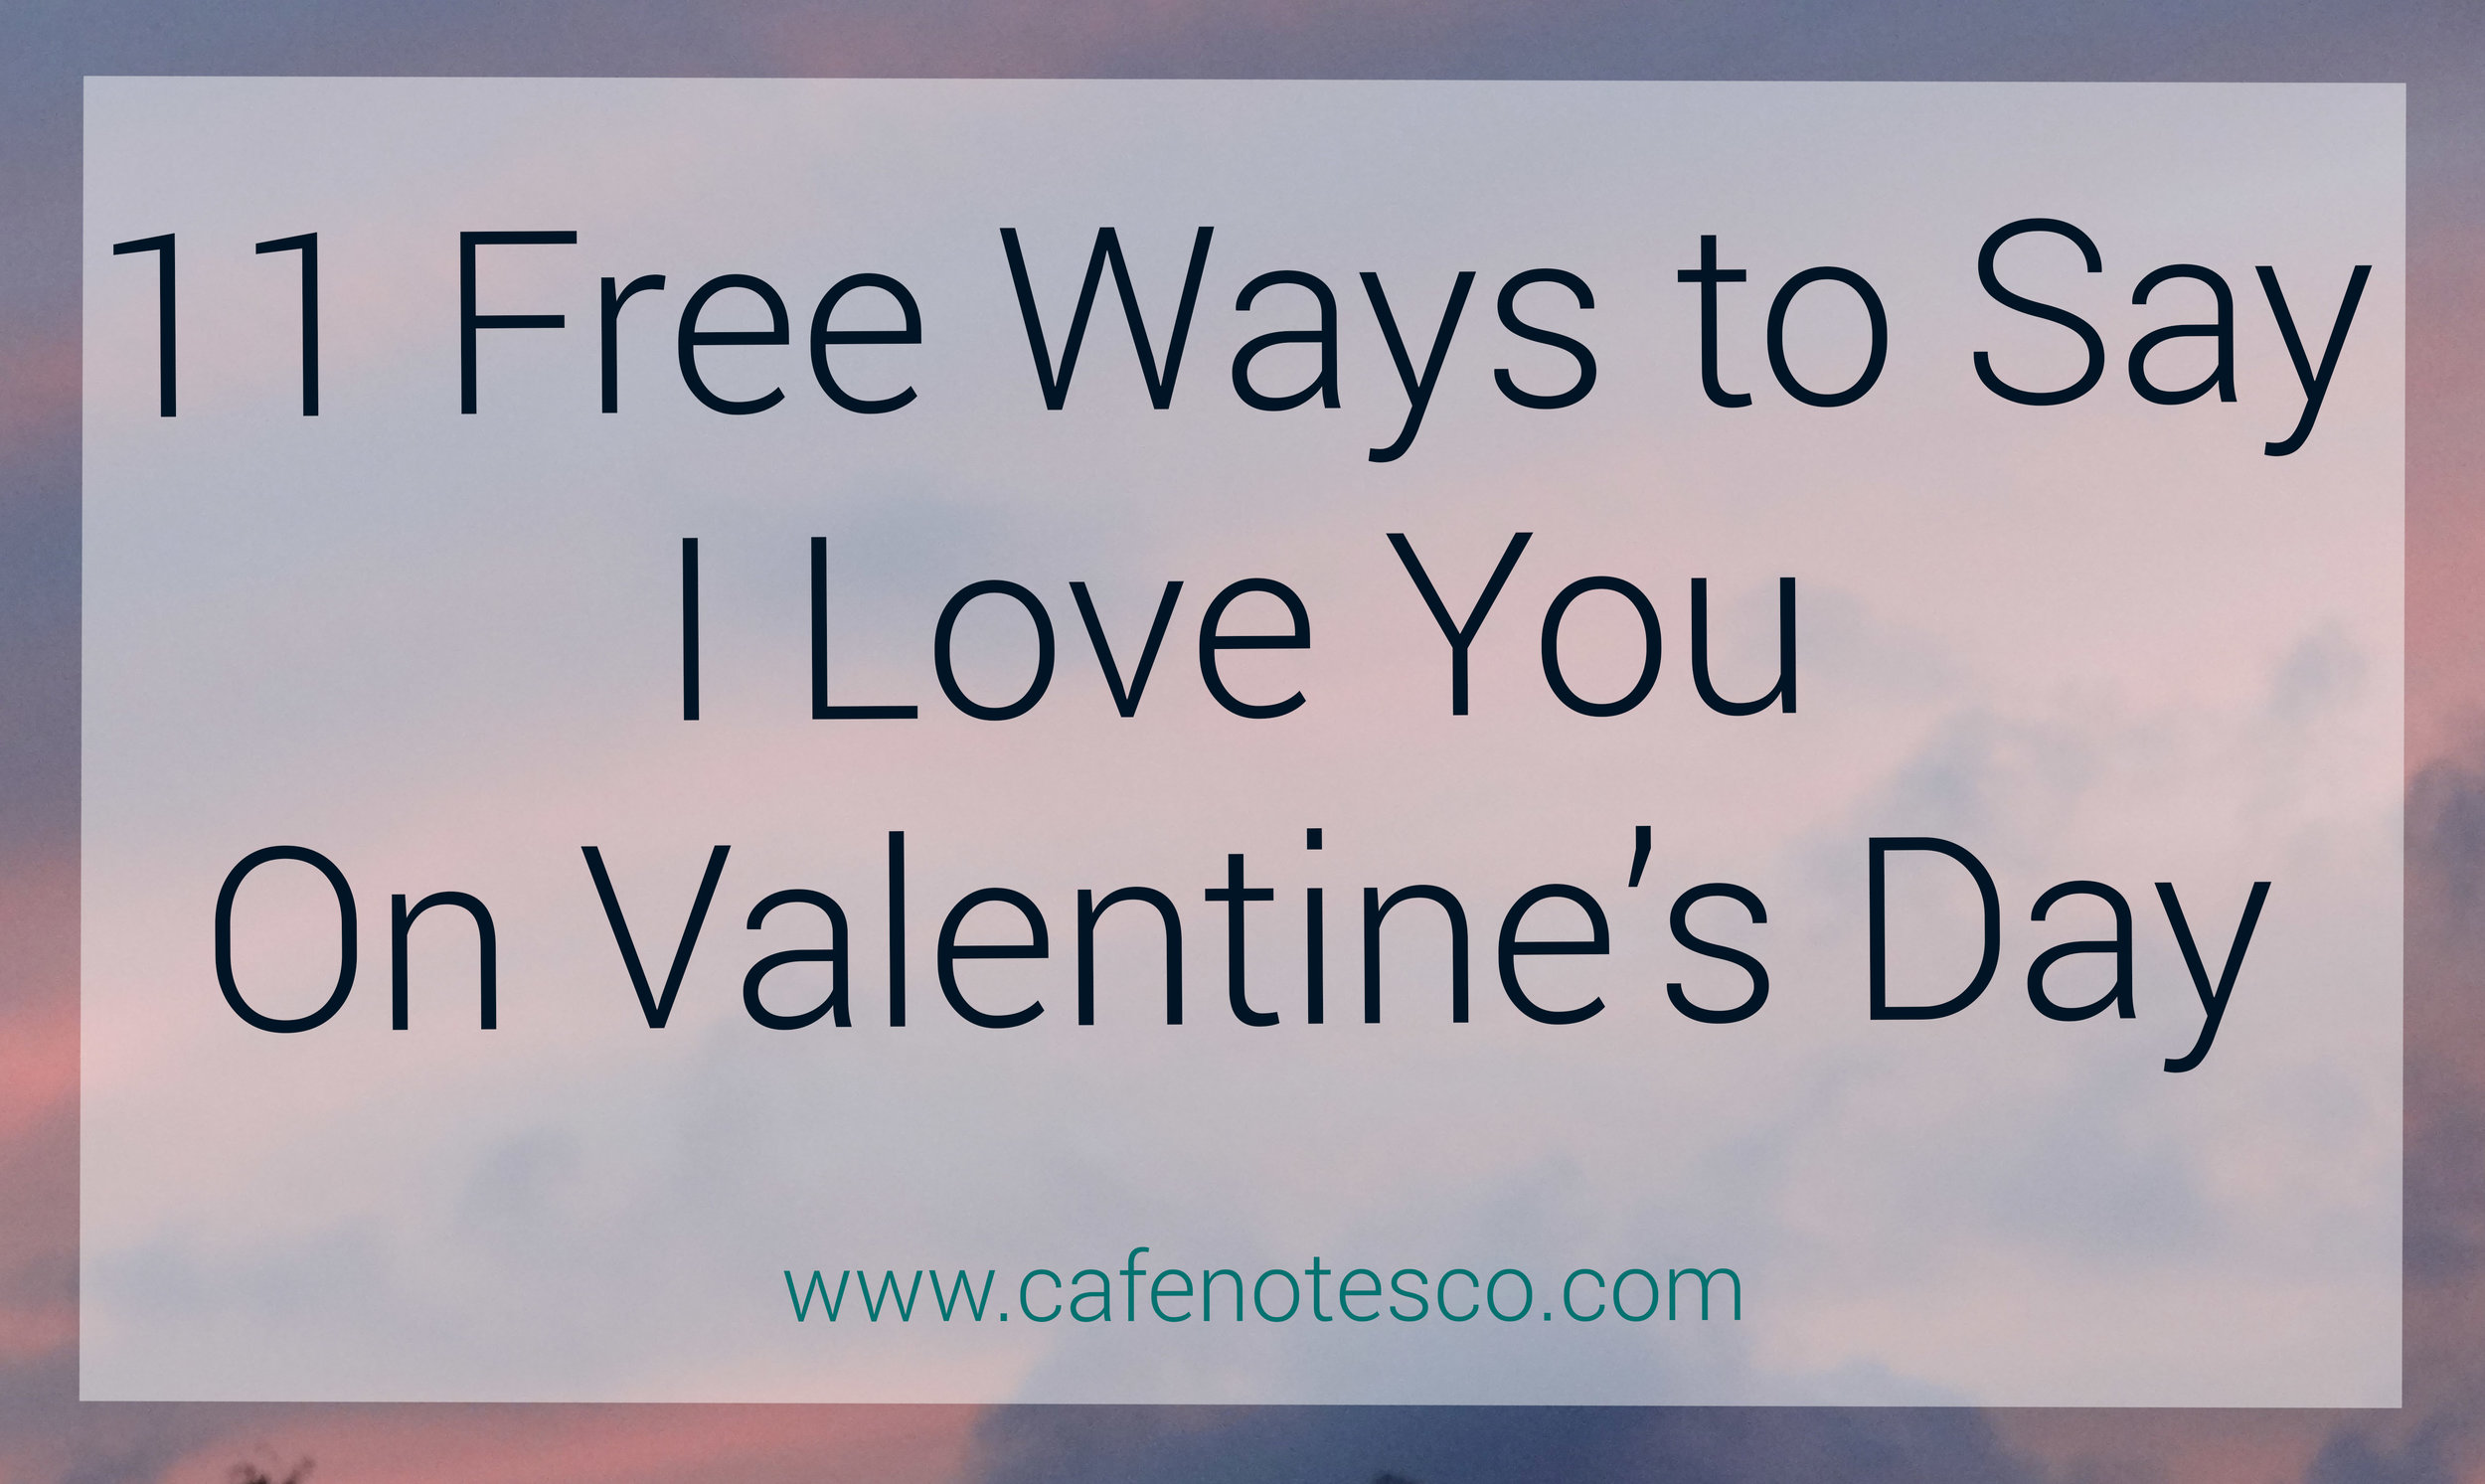 cafe notes + company blog 11 free ways to say i love you